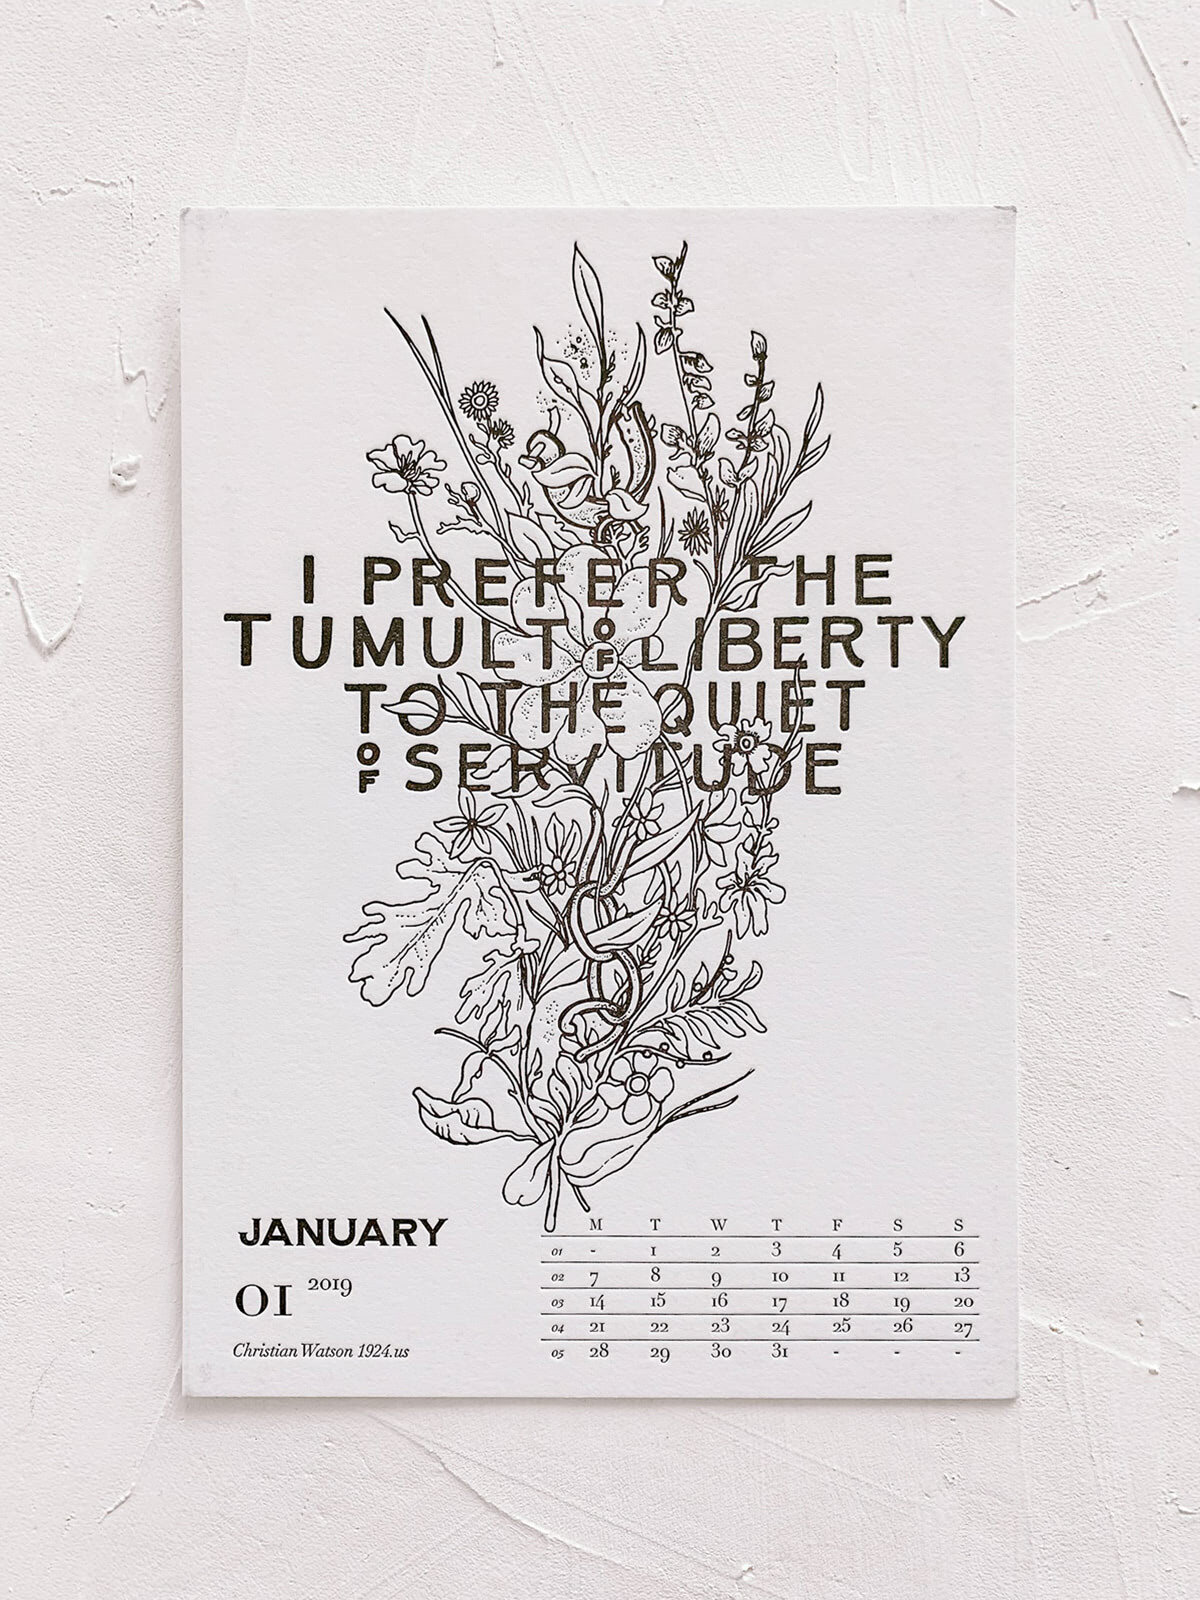 Mr Cup Letterpress Calendar | Design by 1924.us | I prefer the tumult of liberty to the quiet of servitude.